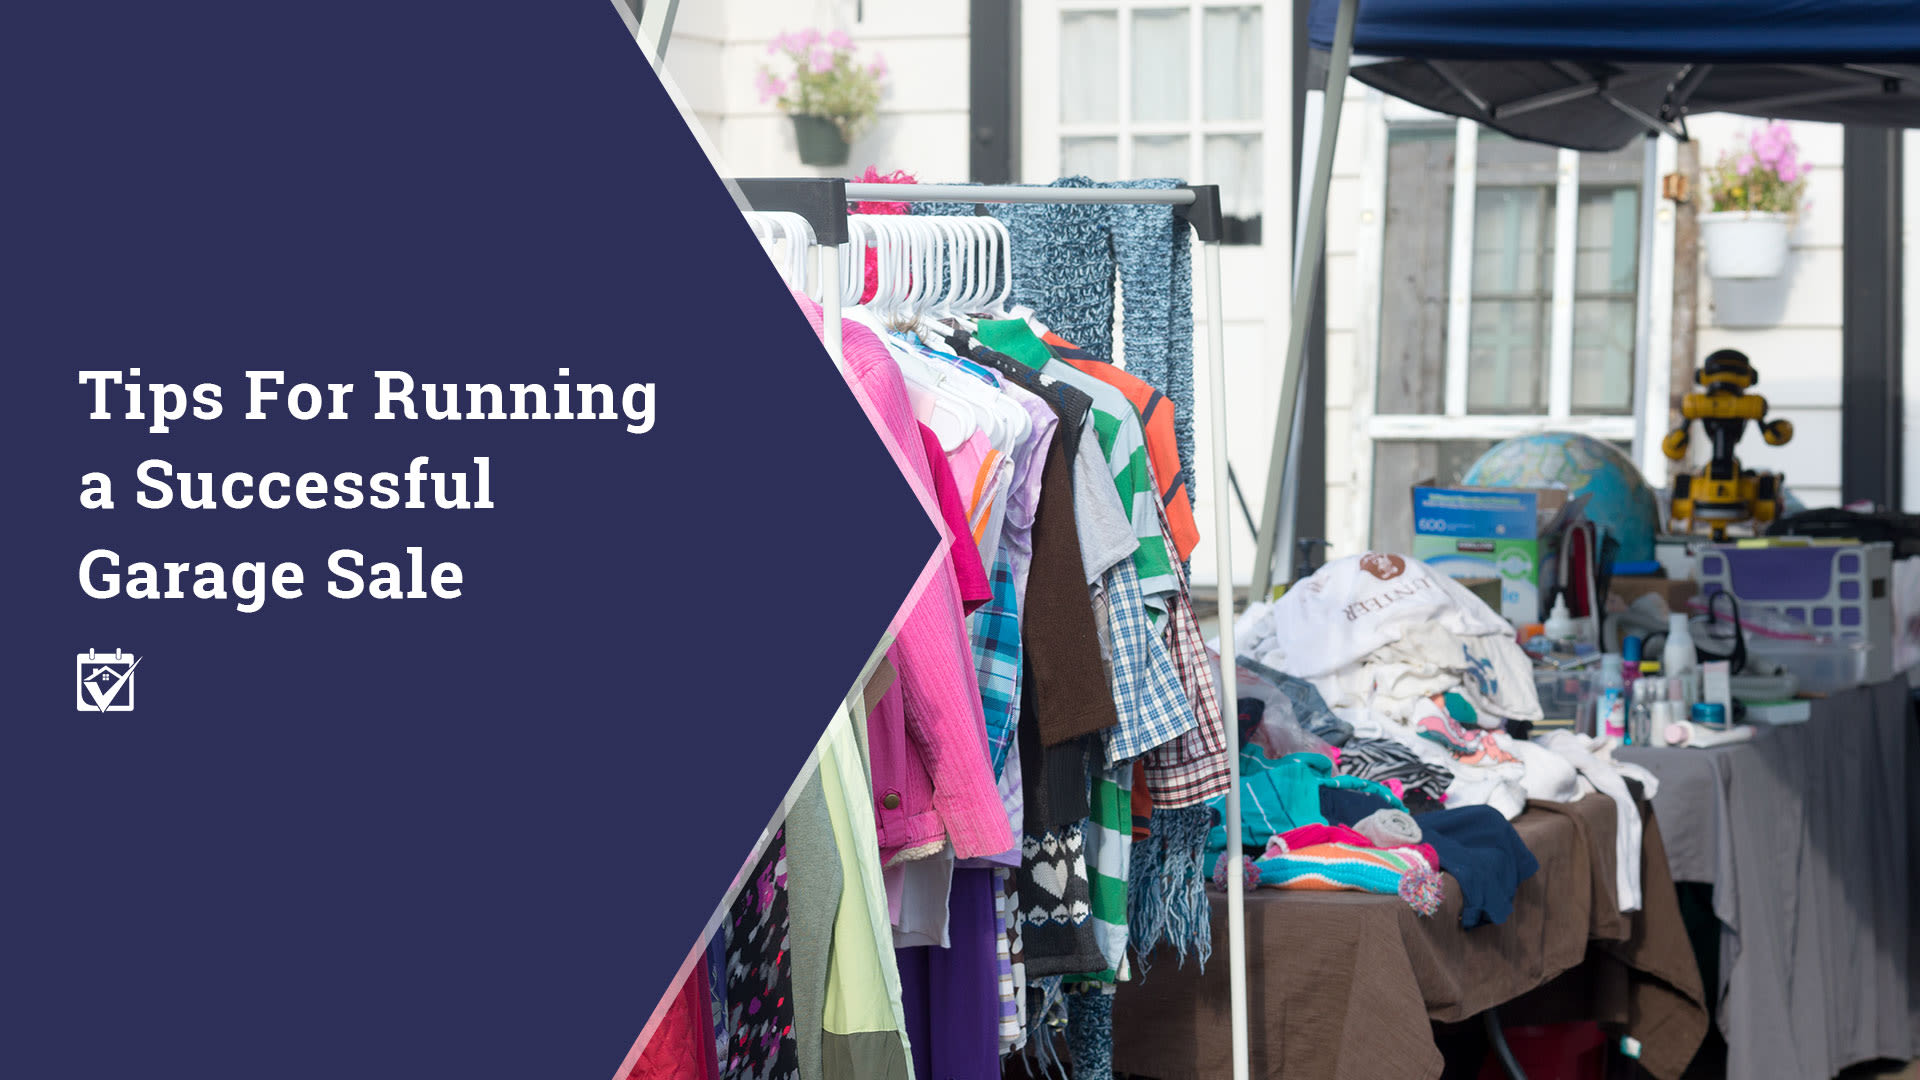 Tips For Running a Successful Garage Sale